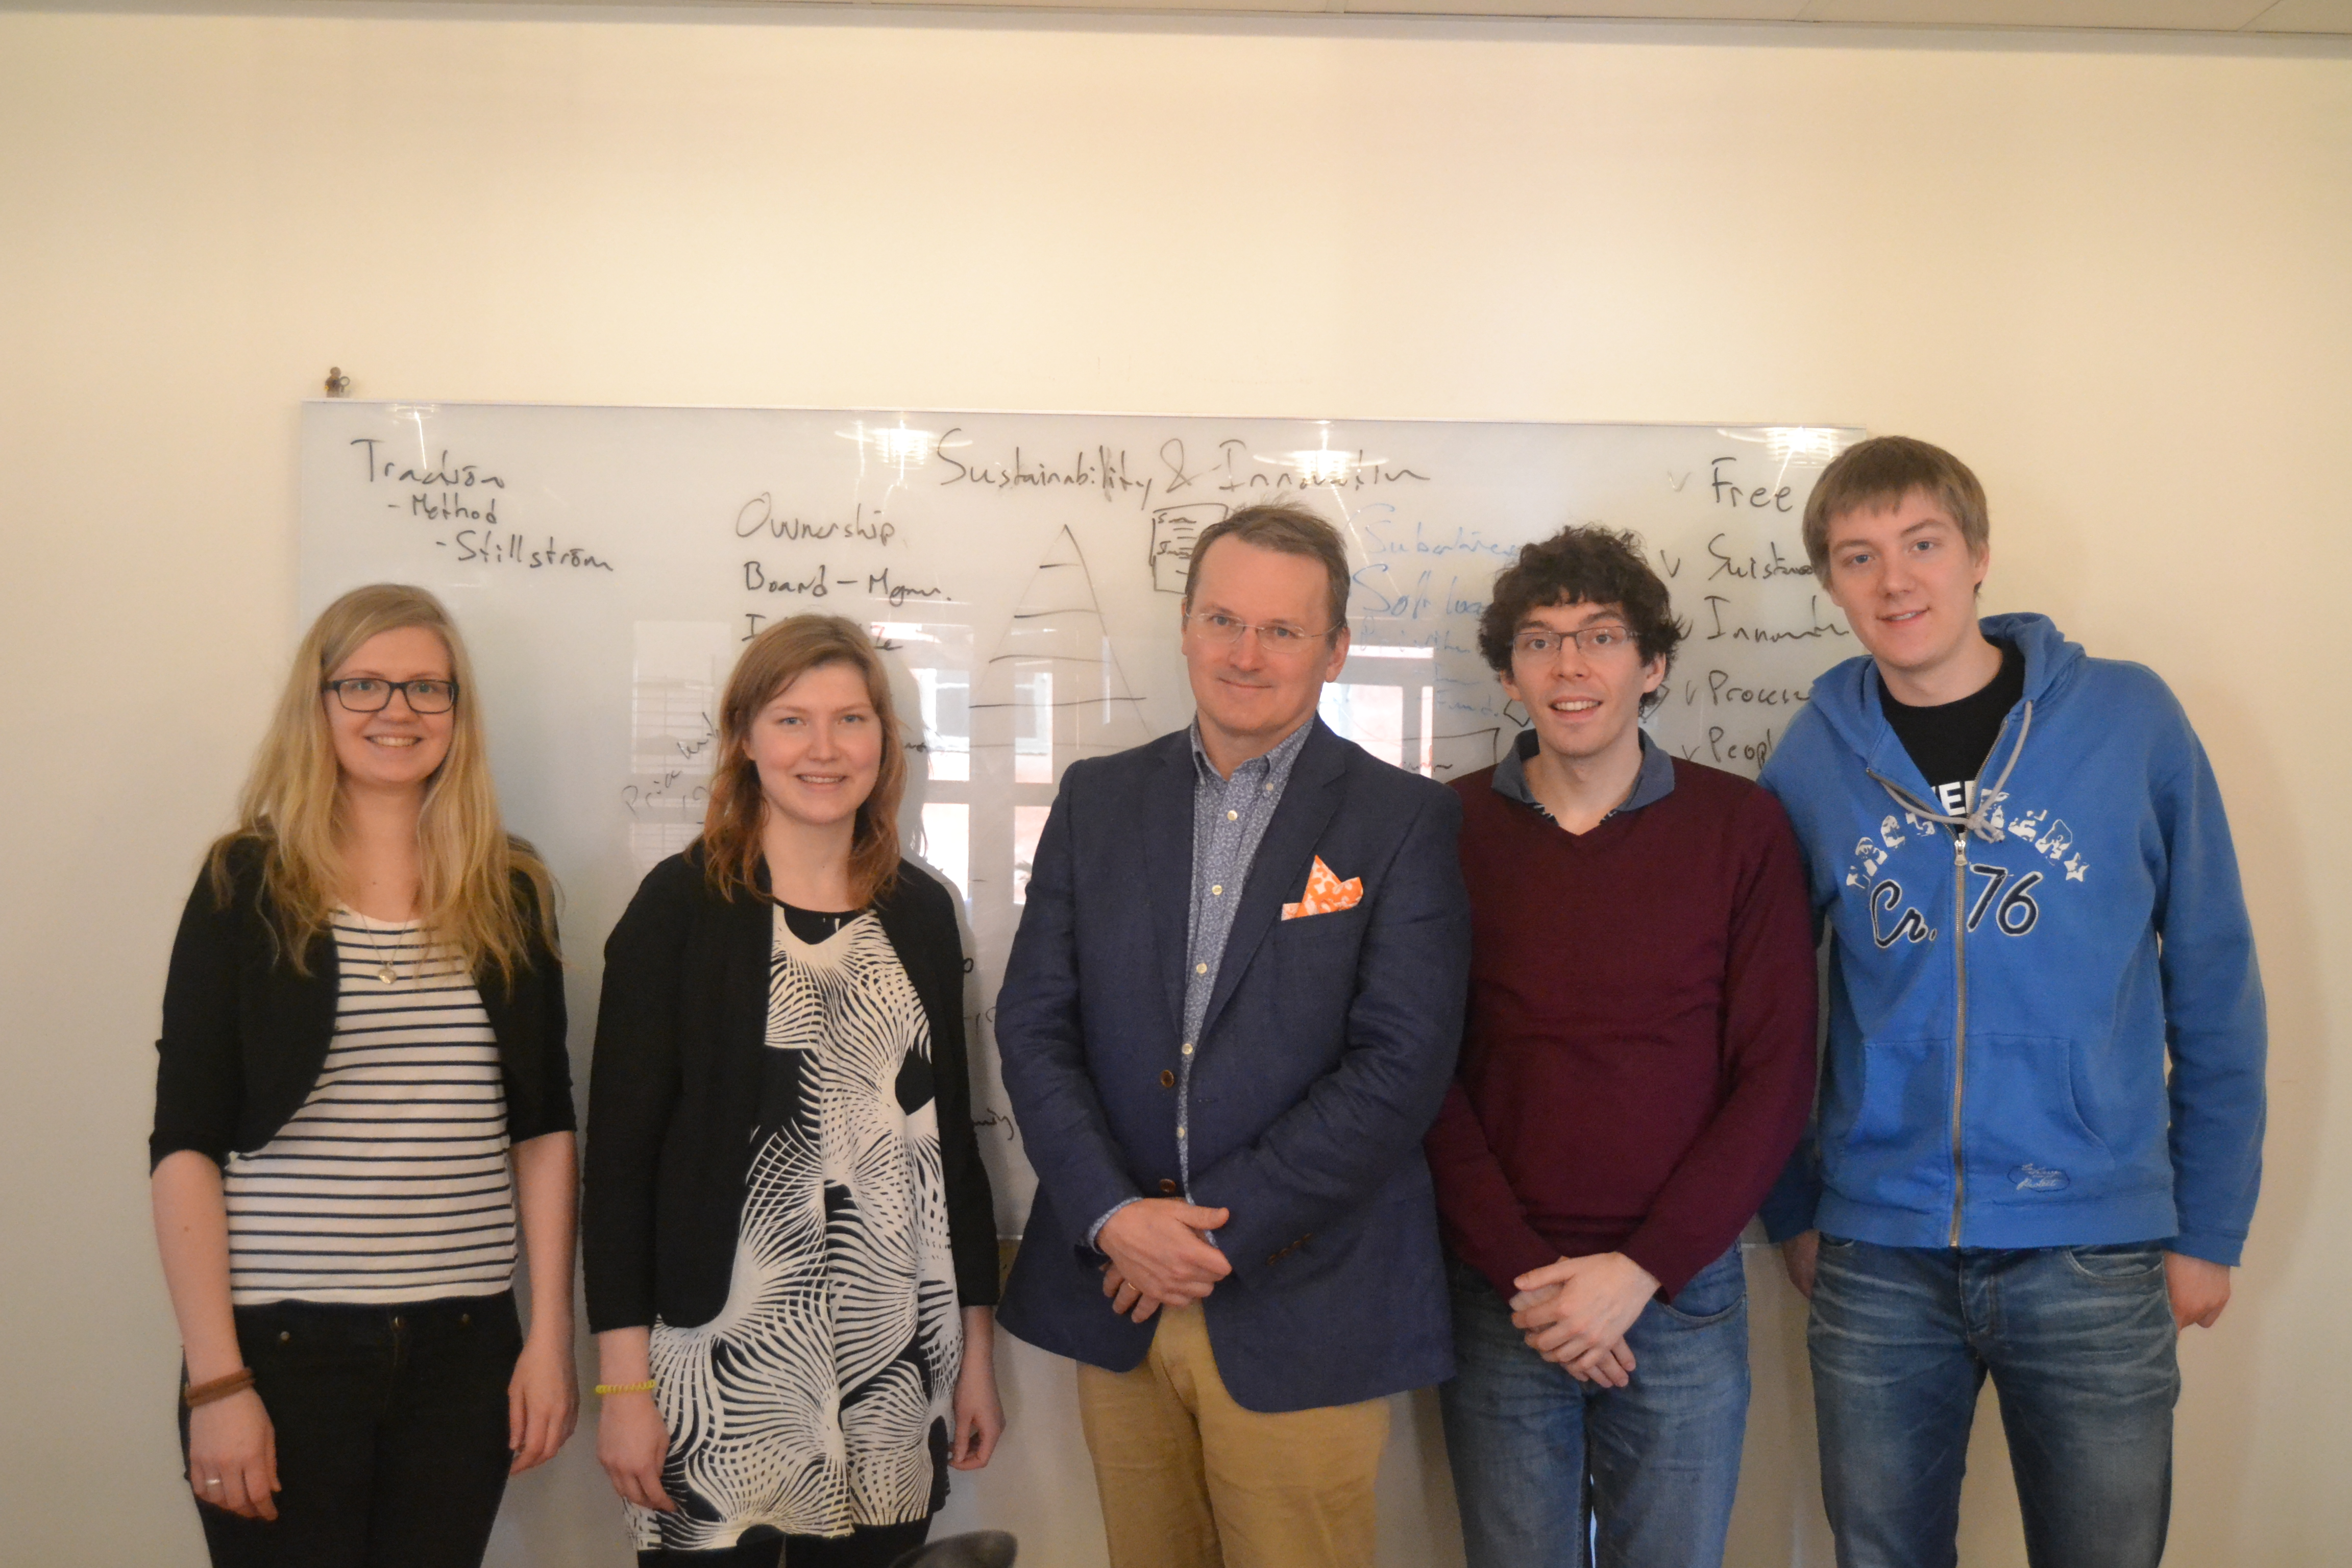 Mira, Mari, Tom and Oskari at Learnways with Nils (in the middle)